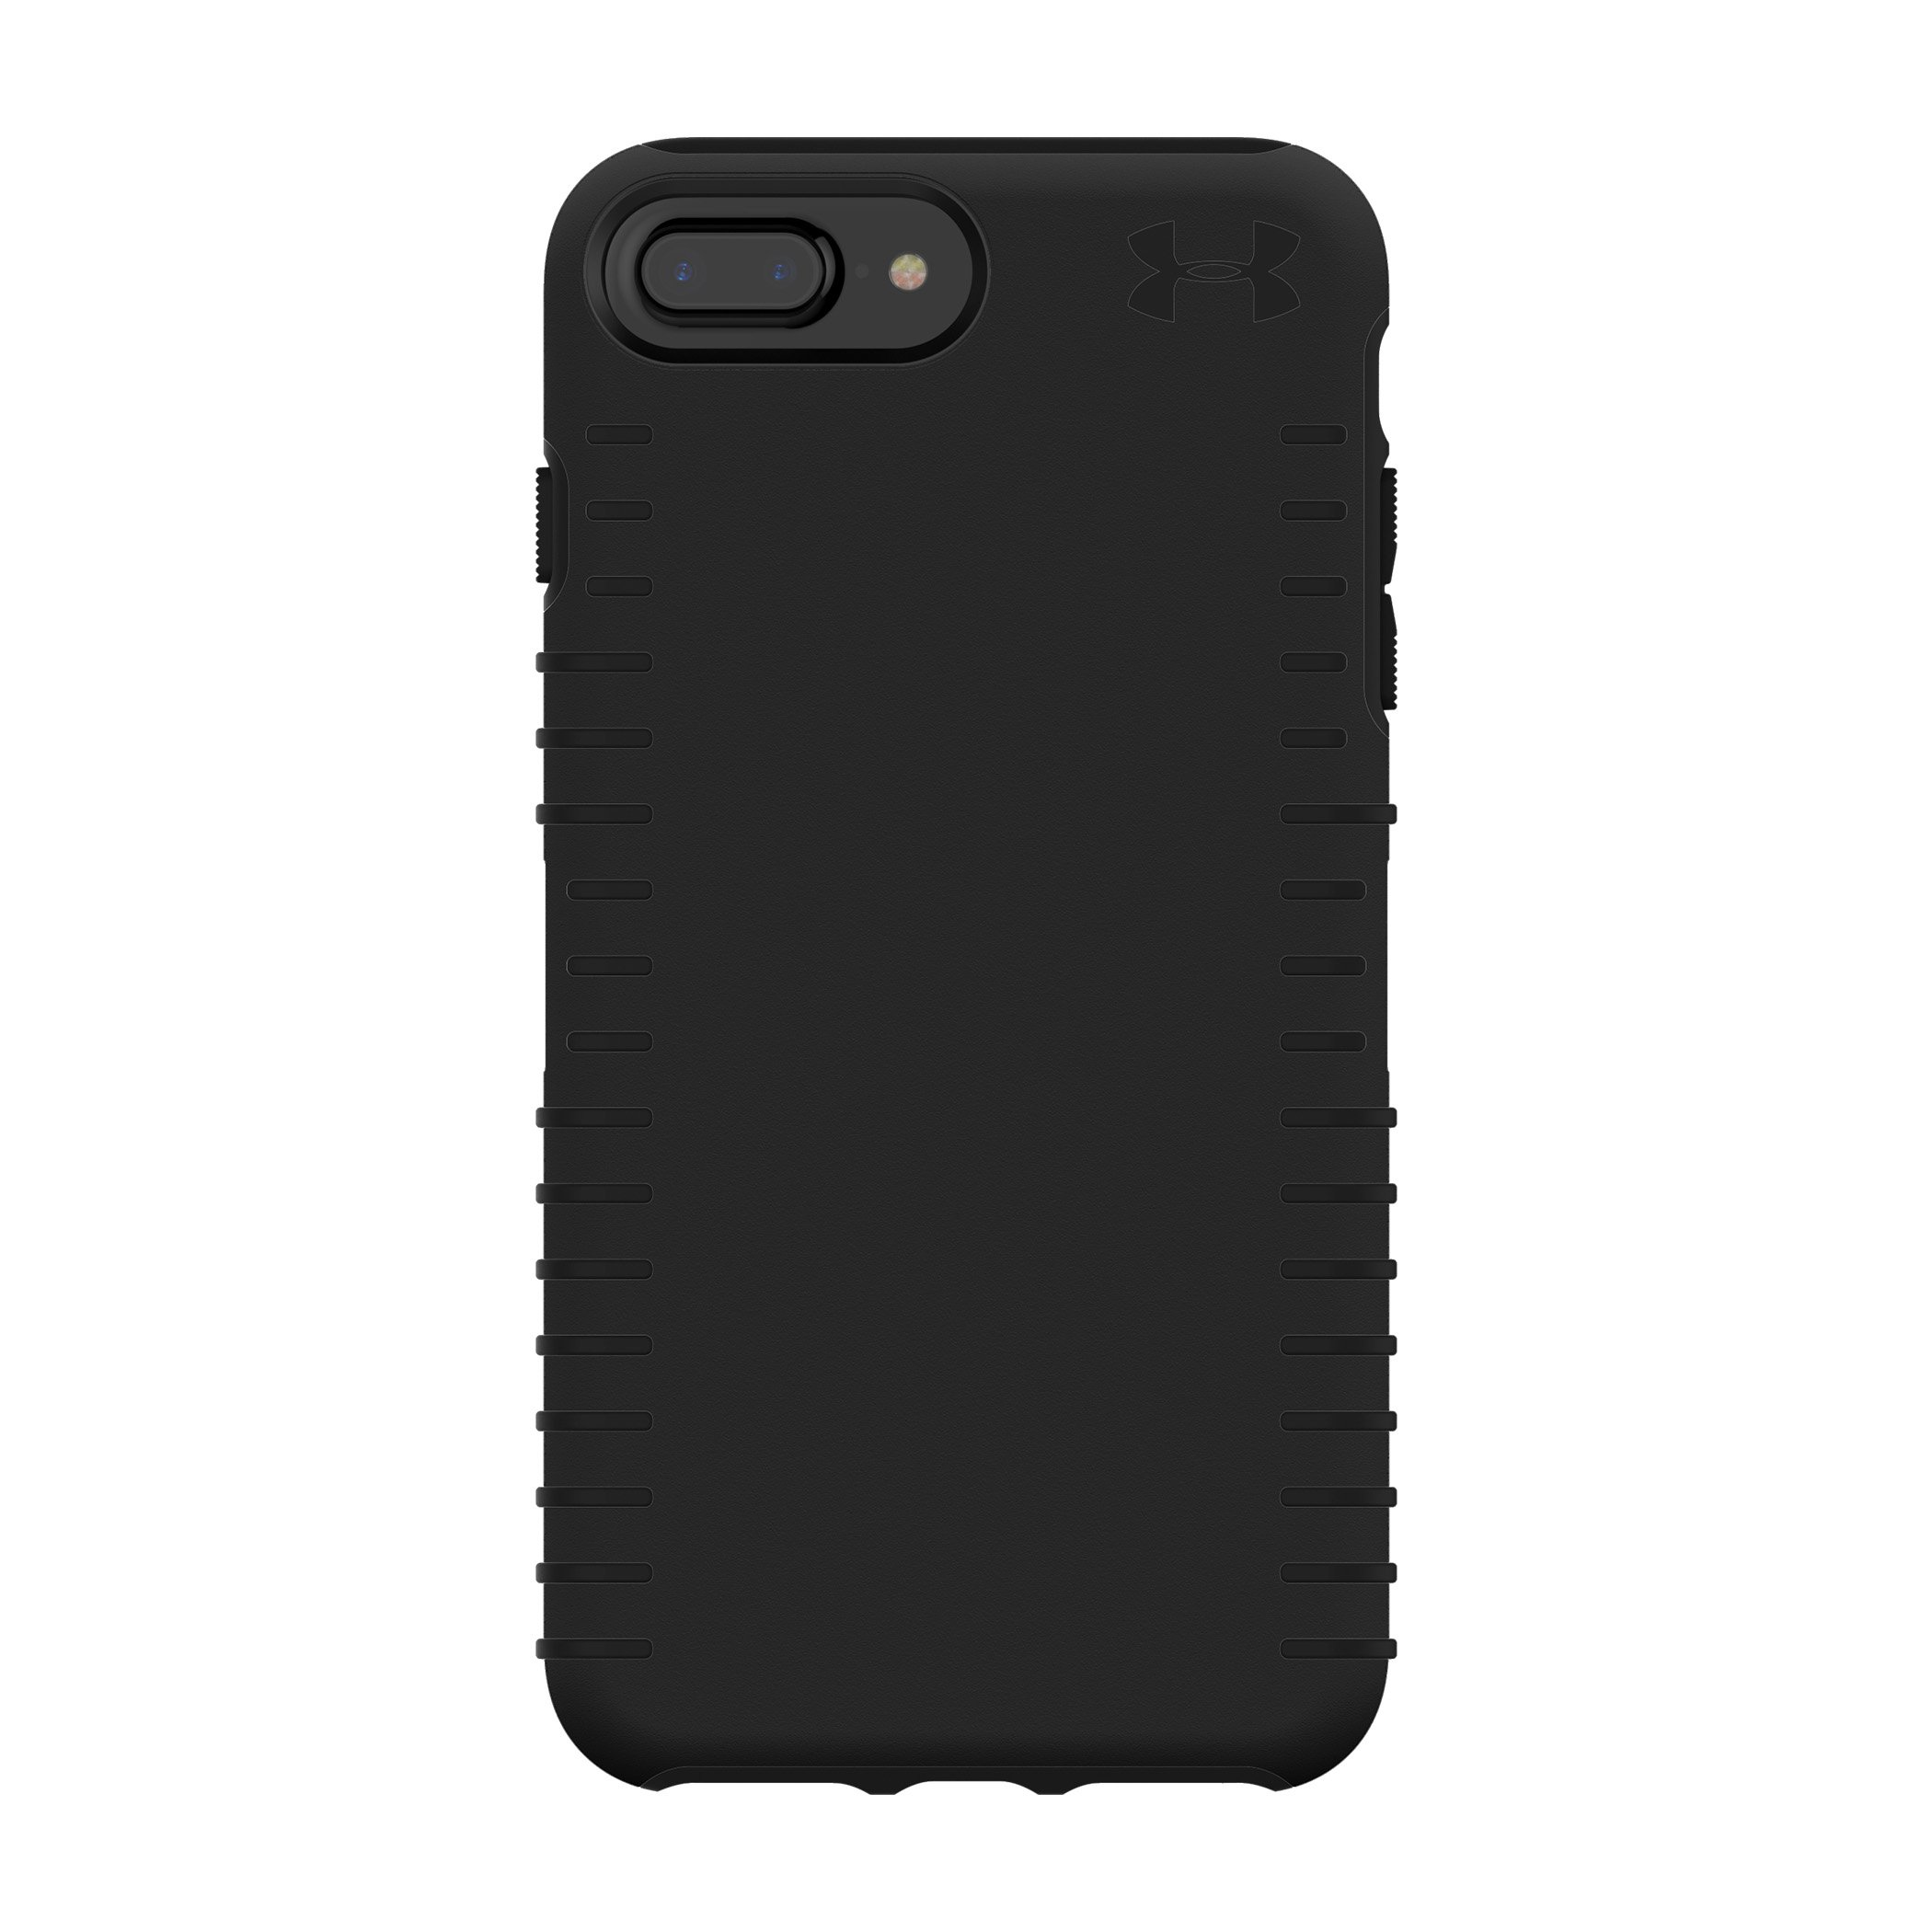 Under Armour UA Protect Grip Case for iPhone 8 Plus, iPhone 7 Plus, iPhone 6s Plus, iPhone 6 Plus - Black/Black